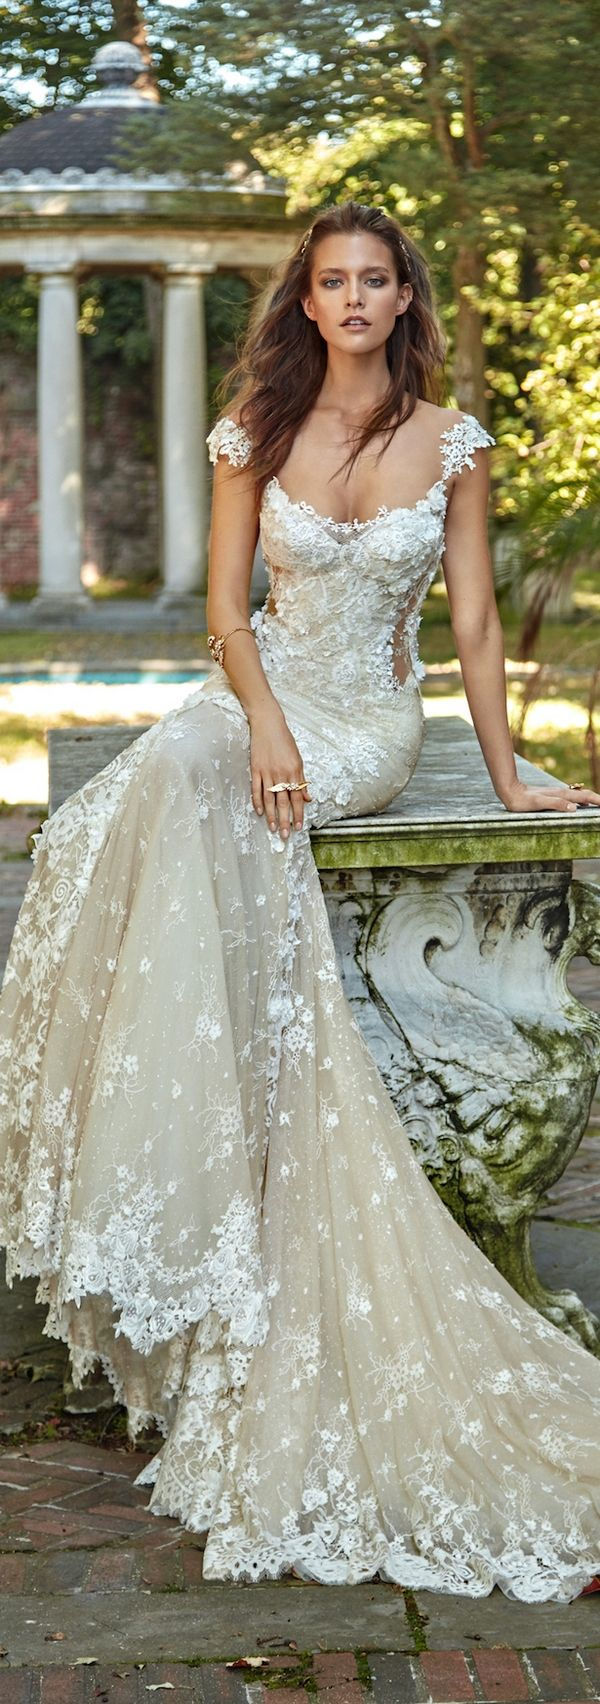 Best 25 extravagant wedding dresses ideas on pinterest for Simple romantic wedding dresses